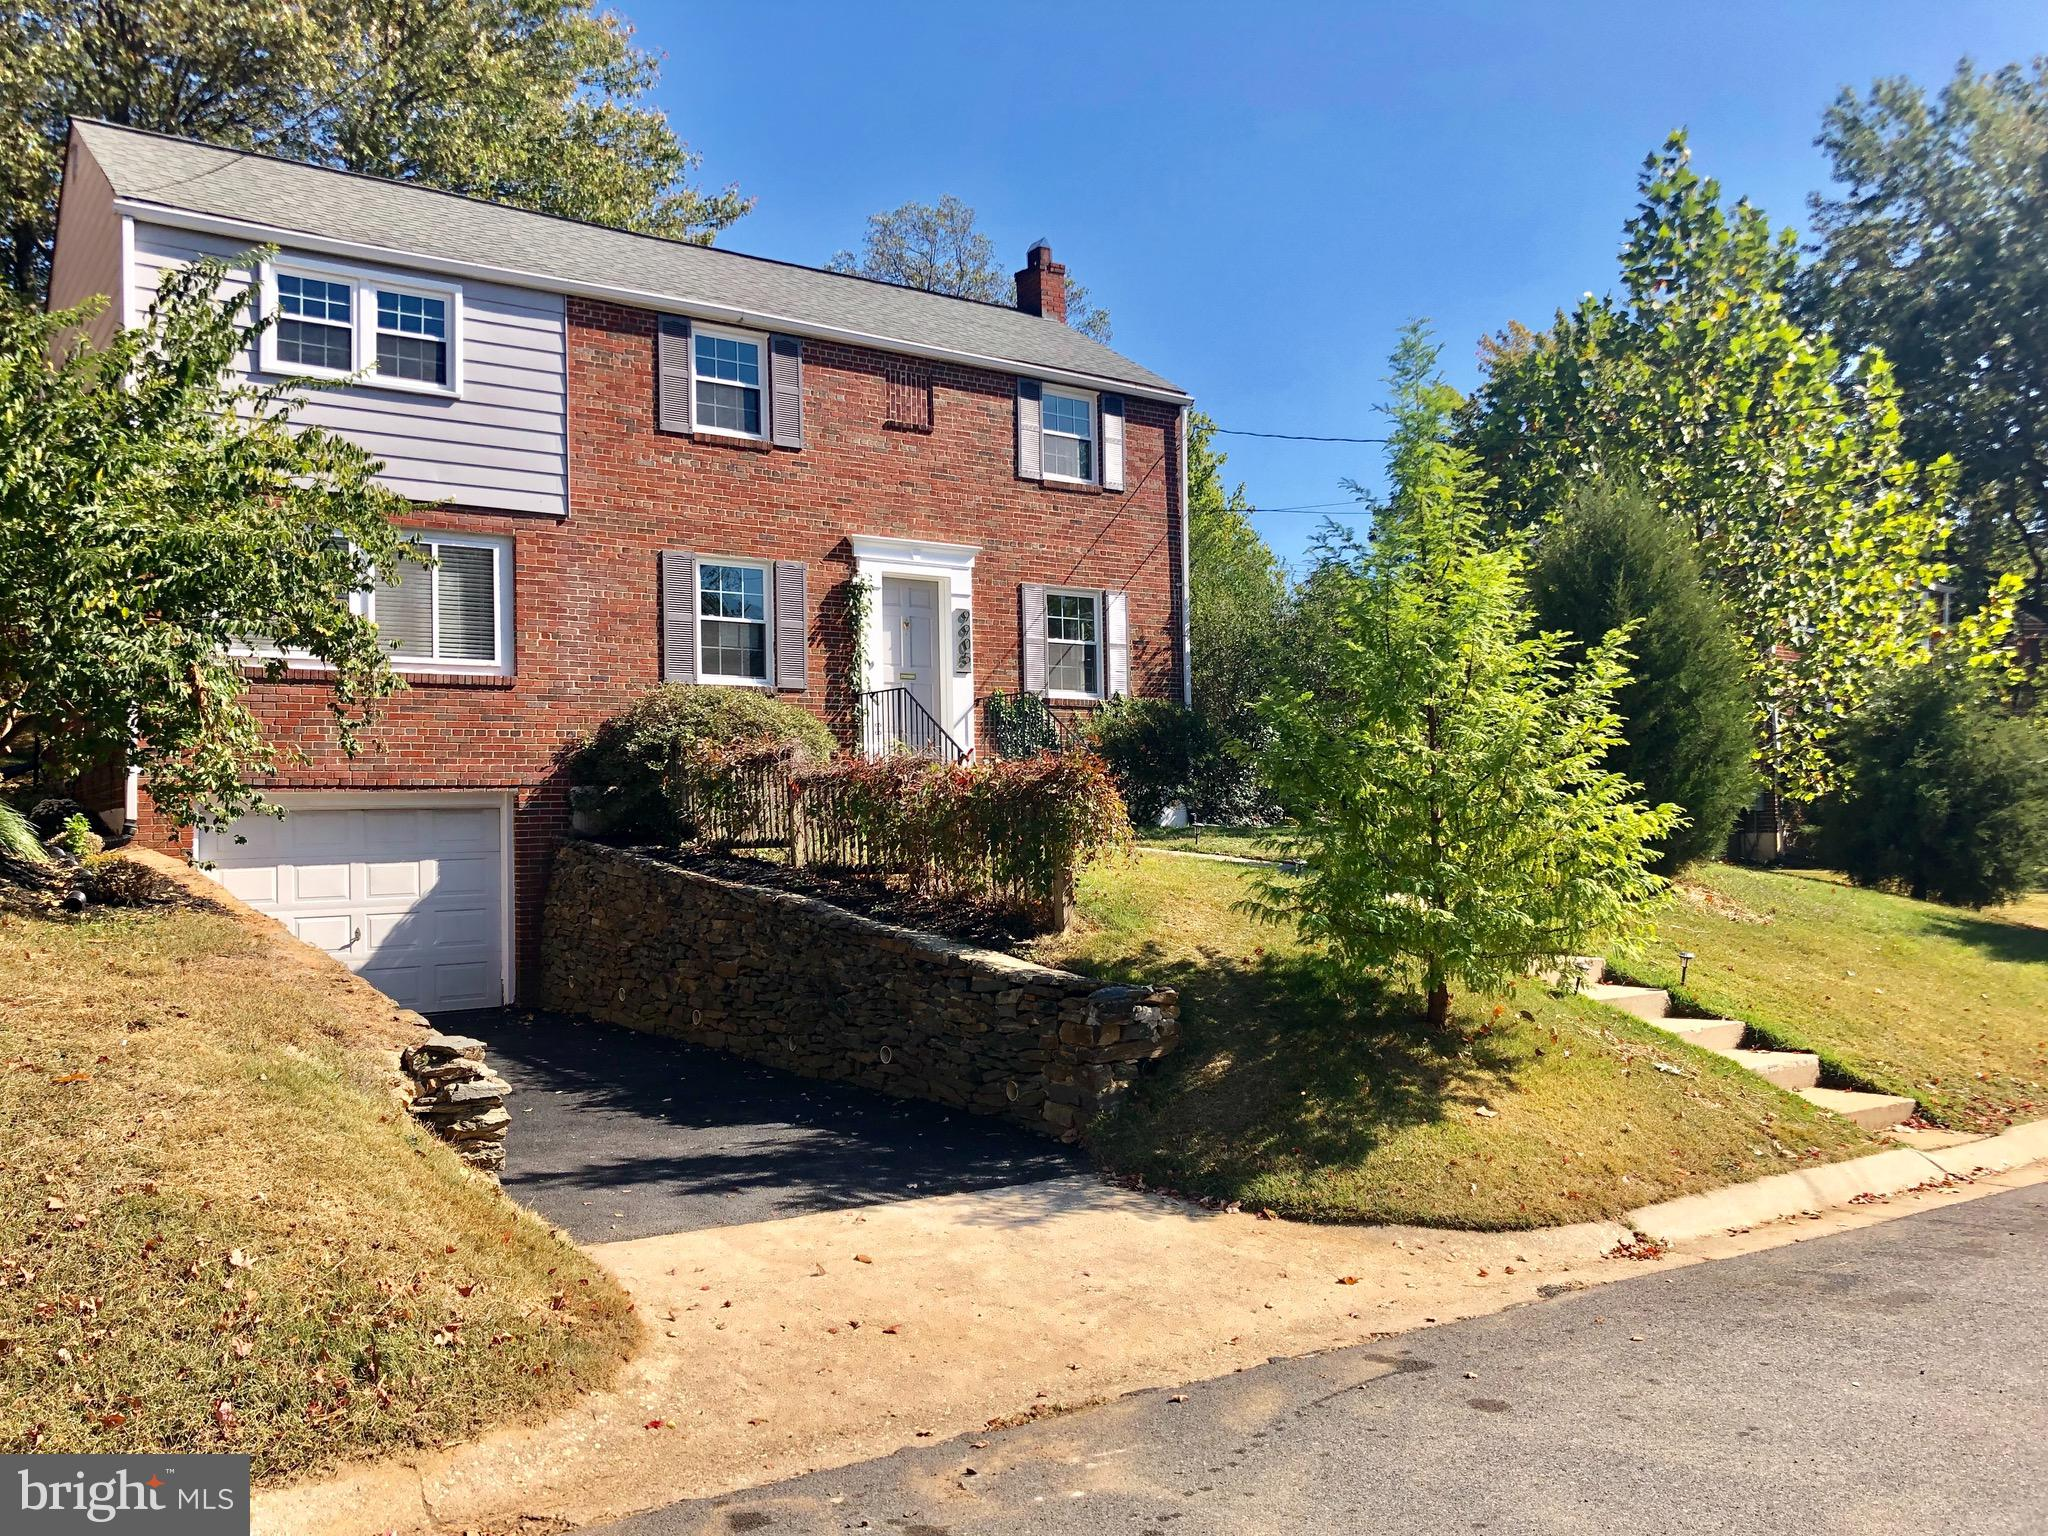 9905 TENBROOK DRIVE, SILVER SPRING, MD 20901